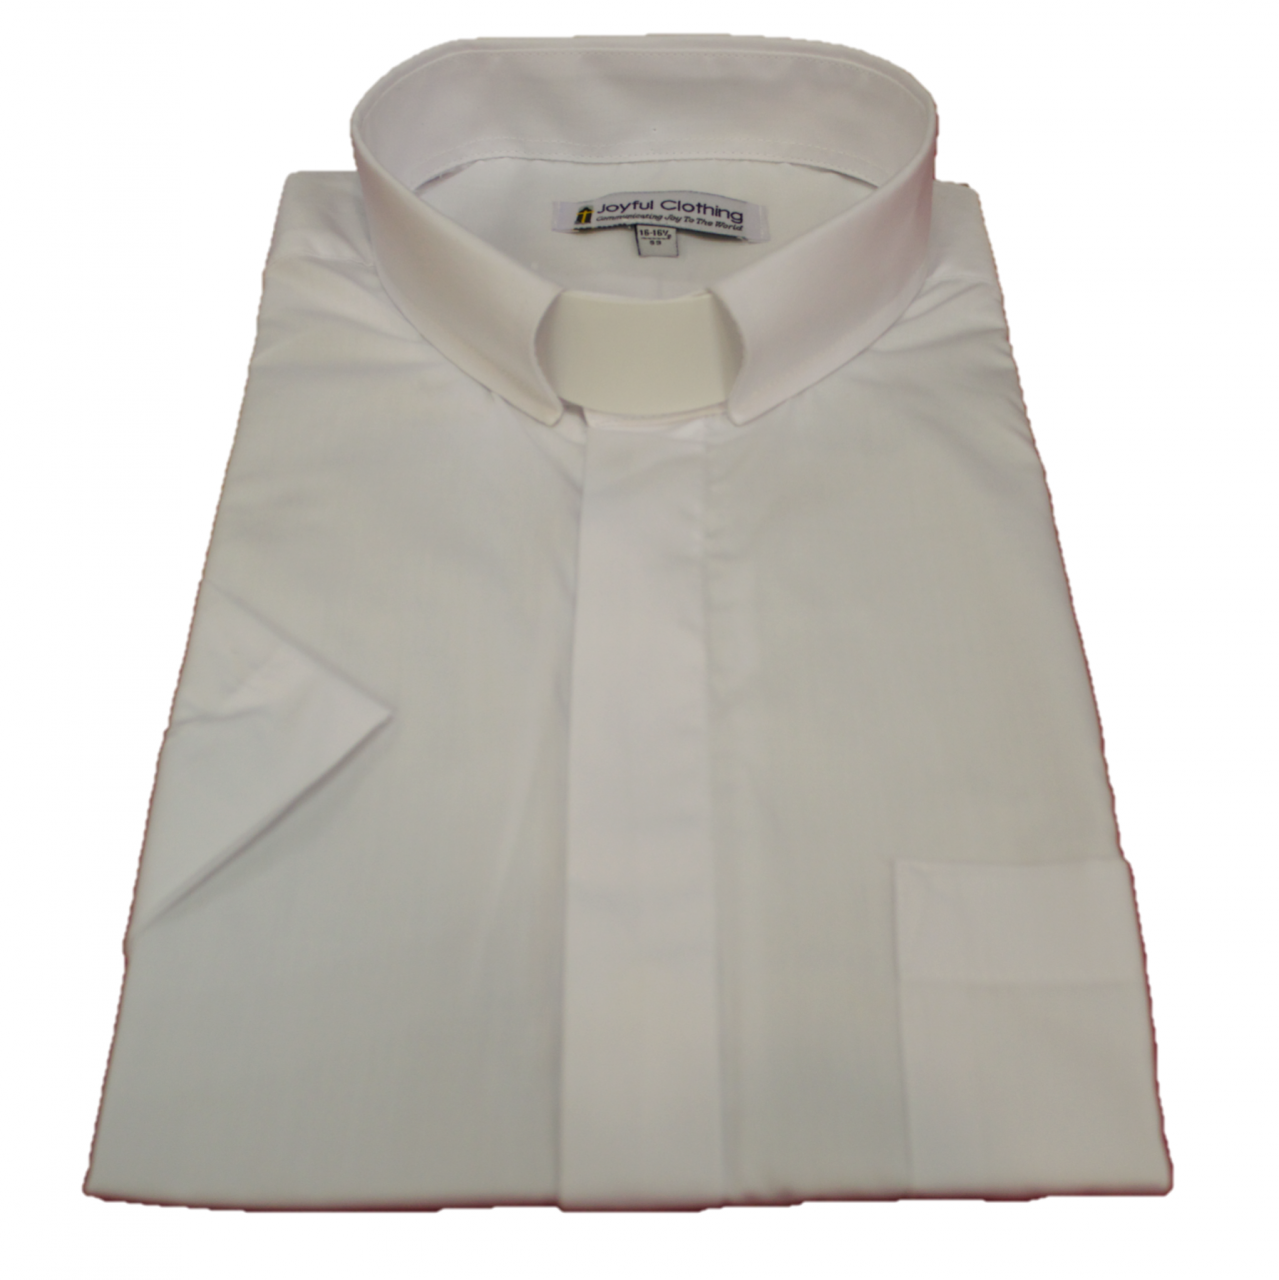 553. Women's Short-Sleeve Tab-Collar Clergy Shirt - White